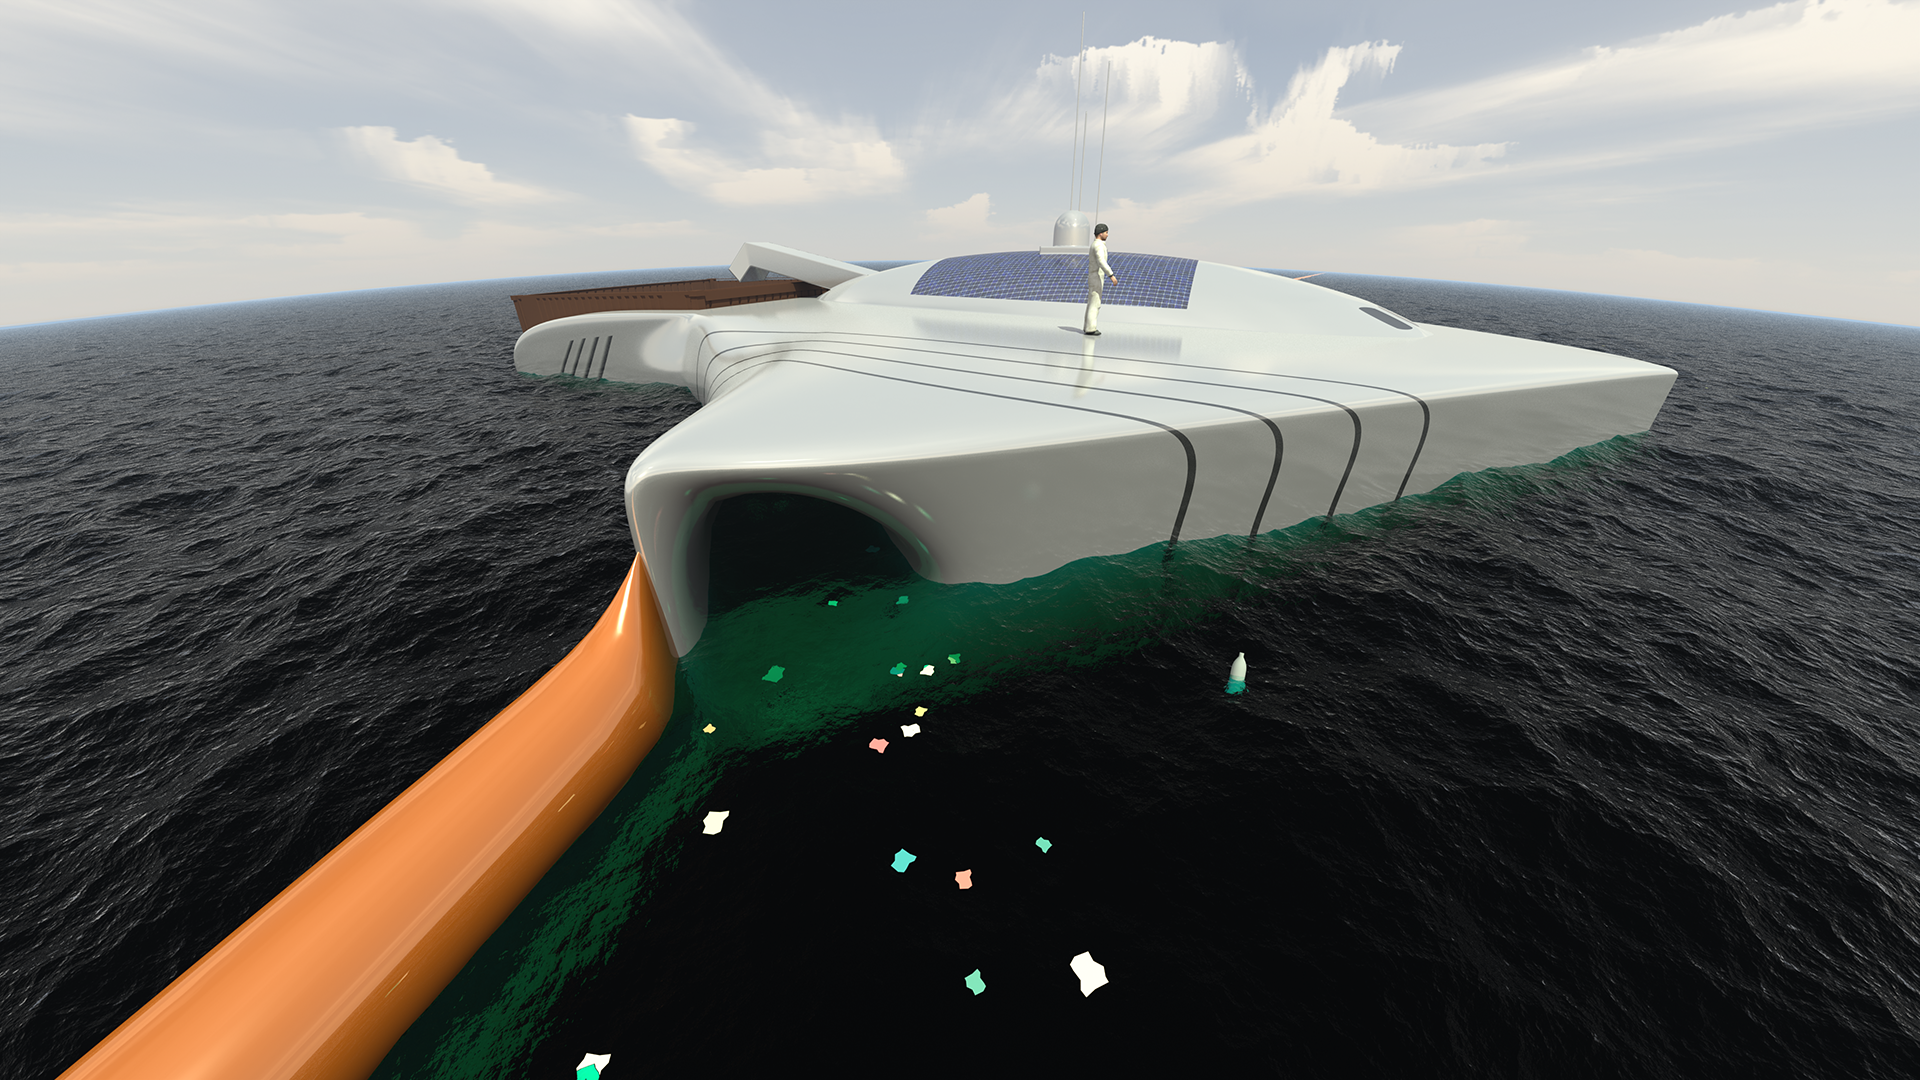 Enter The Ocean Cleanup Contest for a chance to change the world (and win prizes)